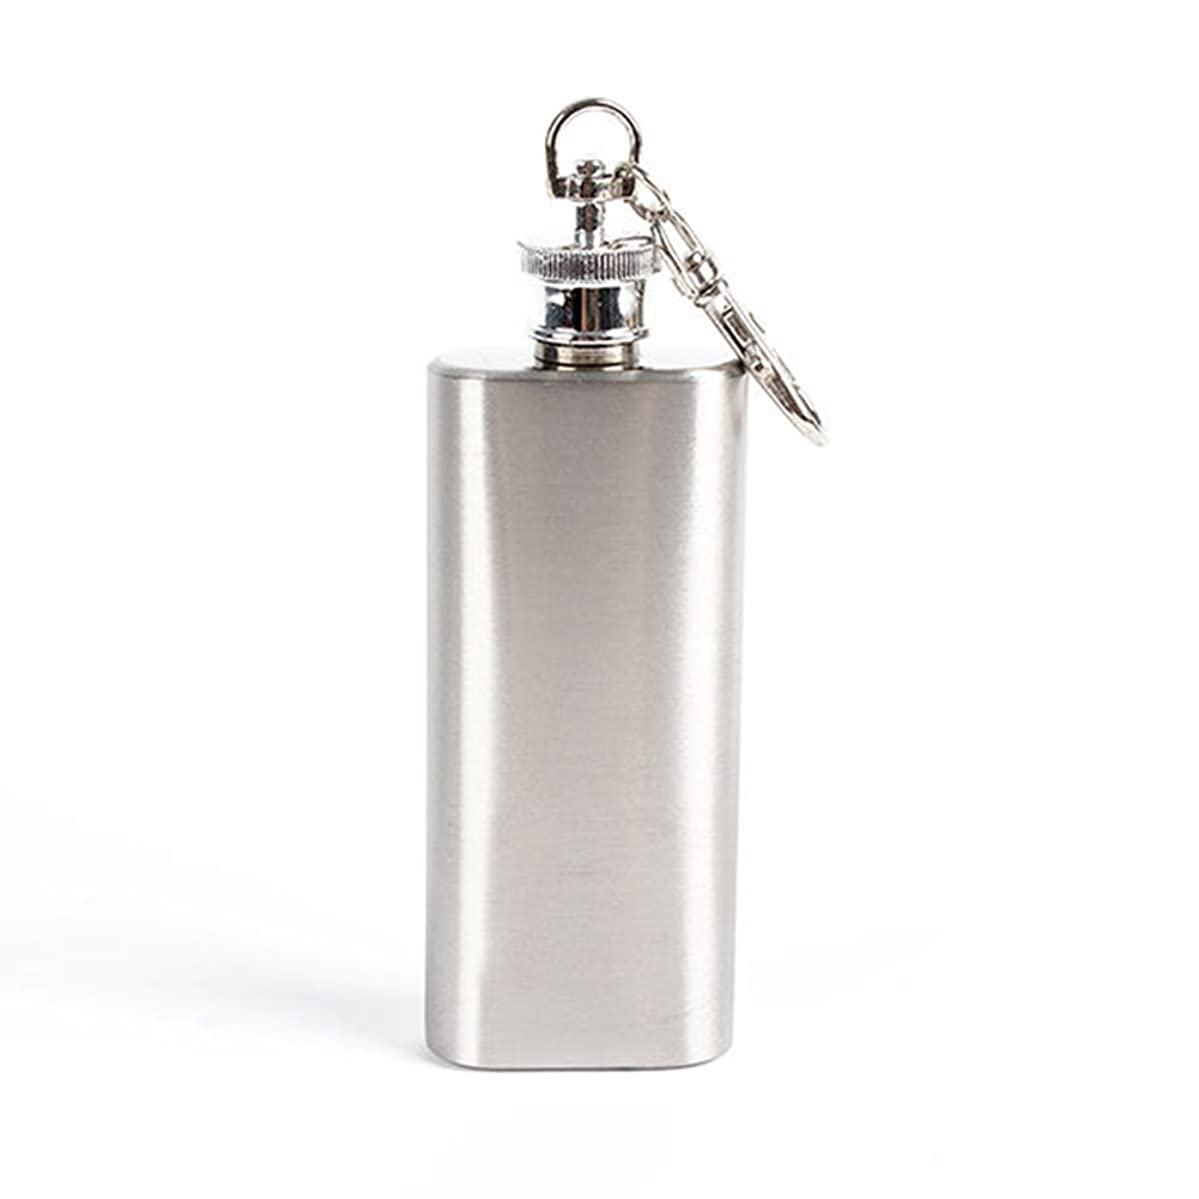 Move on 2oz Mini Wine Bottle Stainless Steel Liquor Hip Flask with Screw Cap Portable Car Key Holder